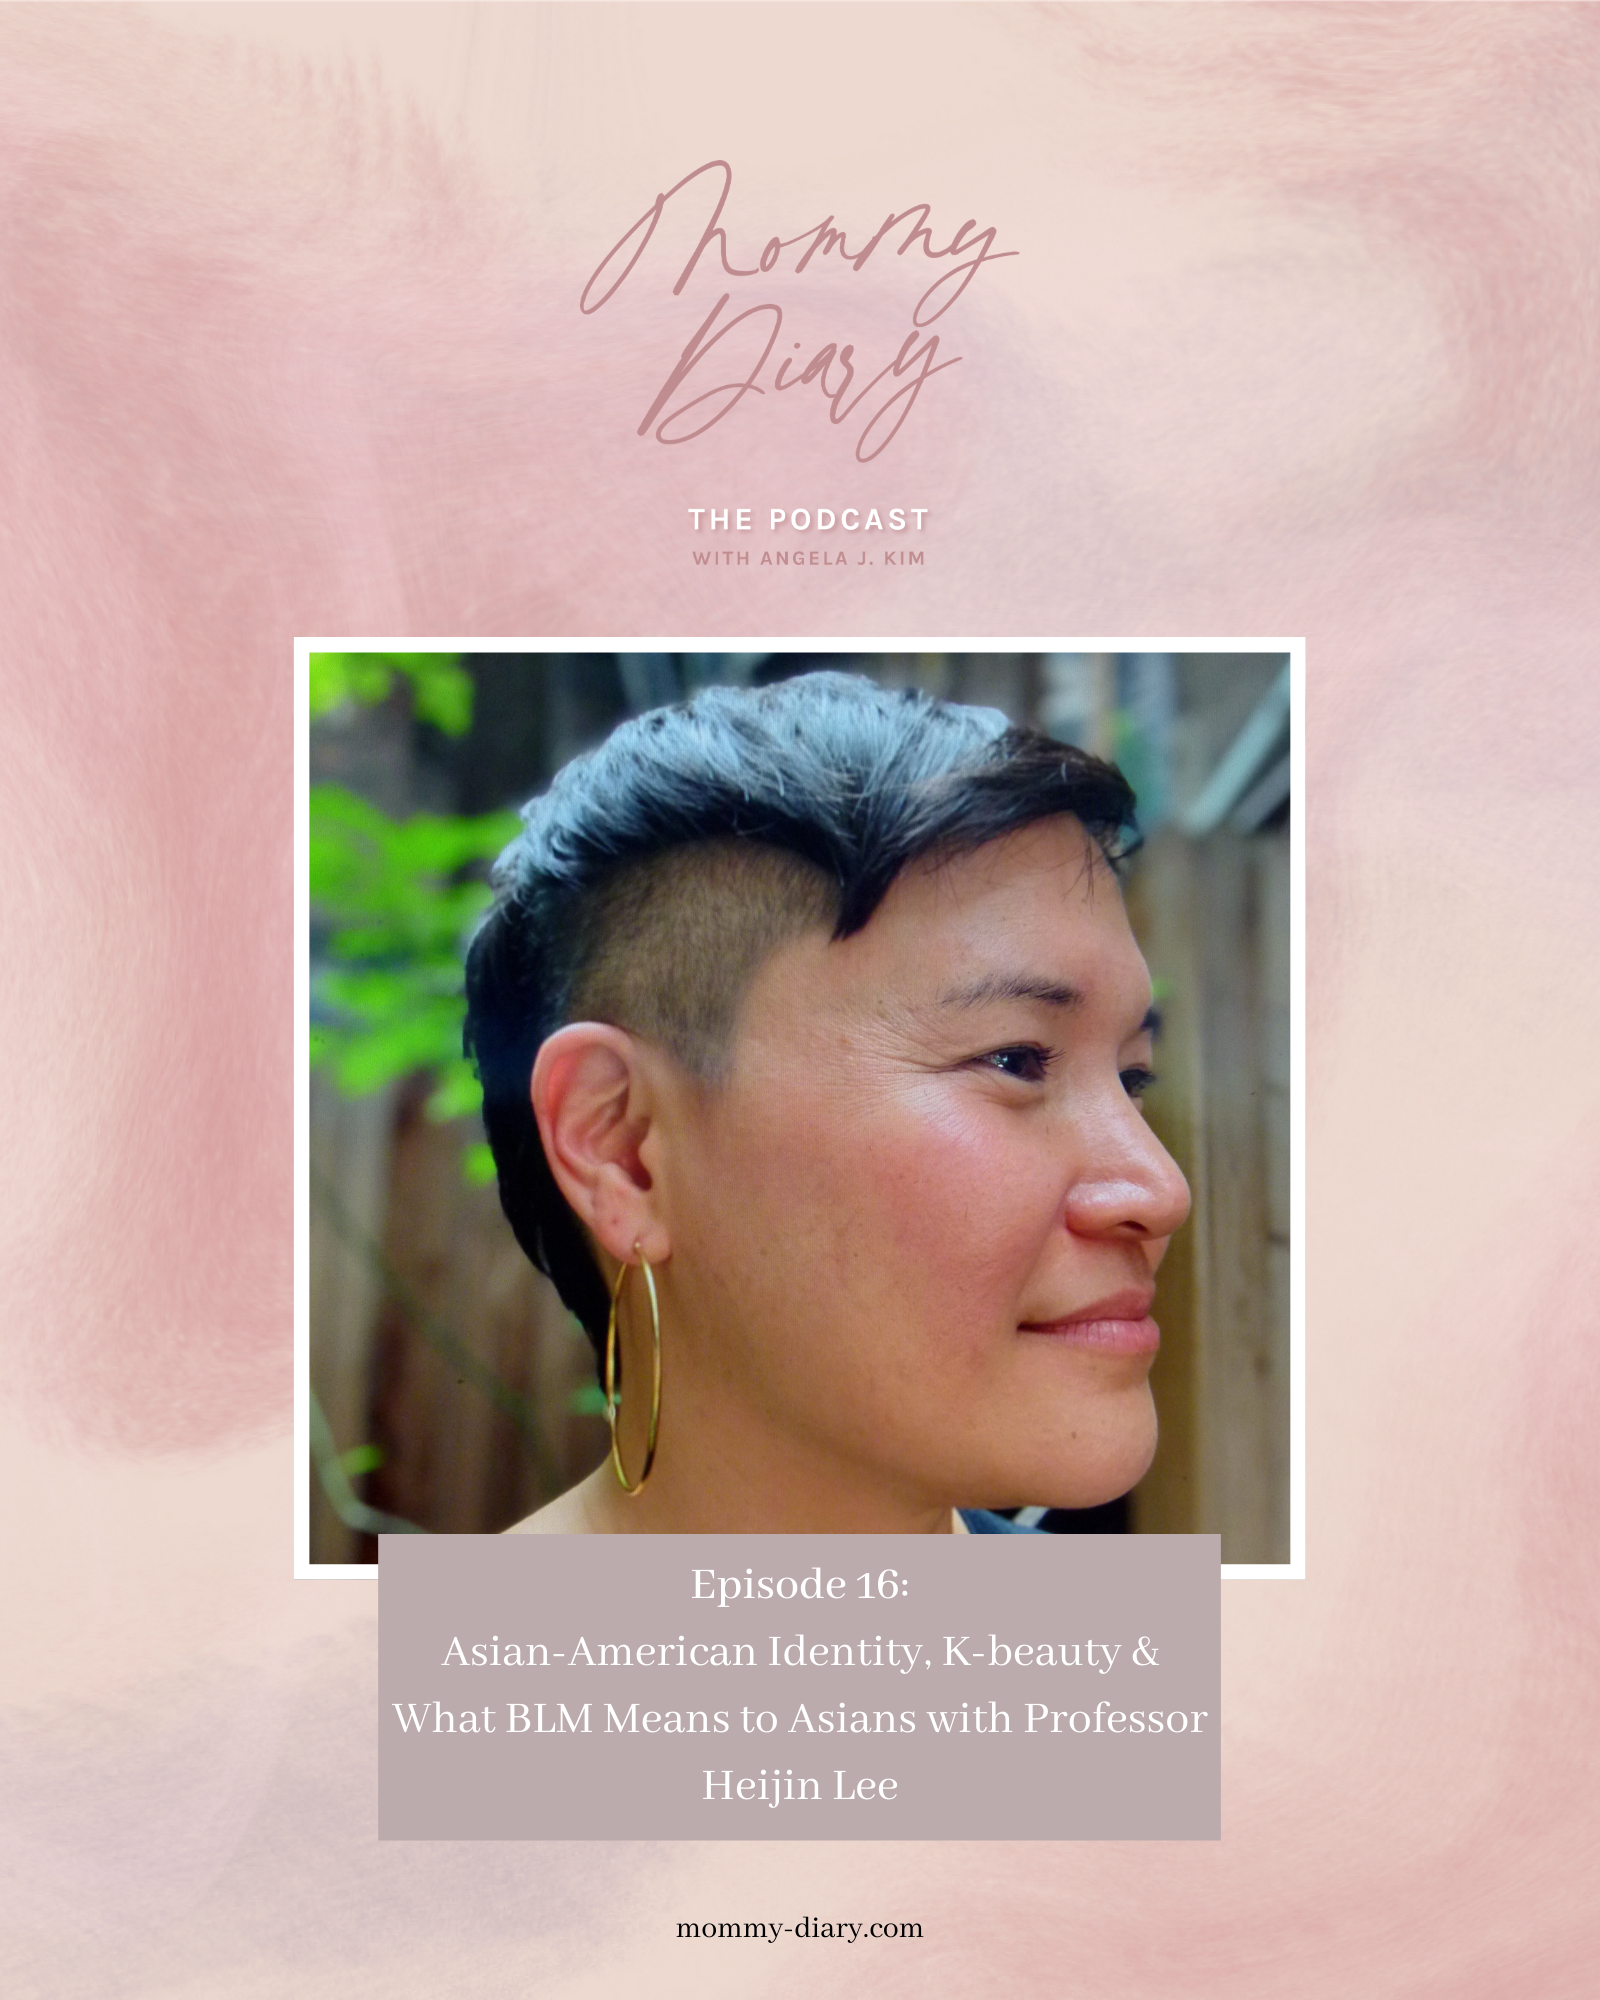 Ep 16: Asian-American Identity, K-beauty & What BLM Means to Asians with Professor Heijin Lee - Mommy Diary; Click here to learn about Asian-American identity & k-beauty on Mommy Diary! Being Asian-Americans, Heijin and I have similar experiences. Learn about k beauty makeup products, k beauty skin care products and k beauty products Korean skincare. K beauty skin care skincare routine is important in Korea. We also discuss black lives matter on this podcast episode. Learn about asian culture life and Korean pop culture aesthetic specifically as well on this episode.